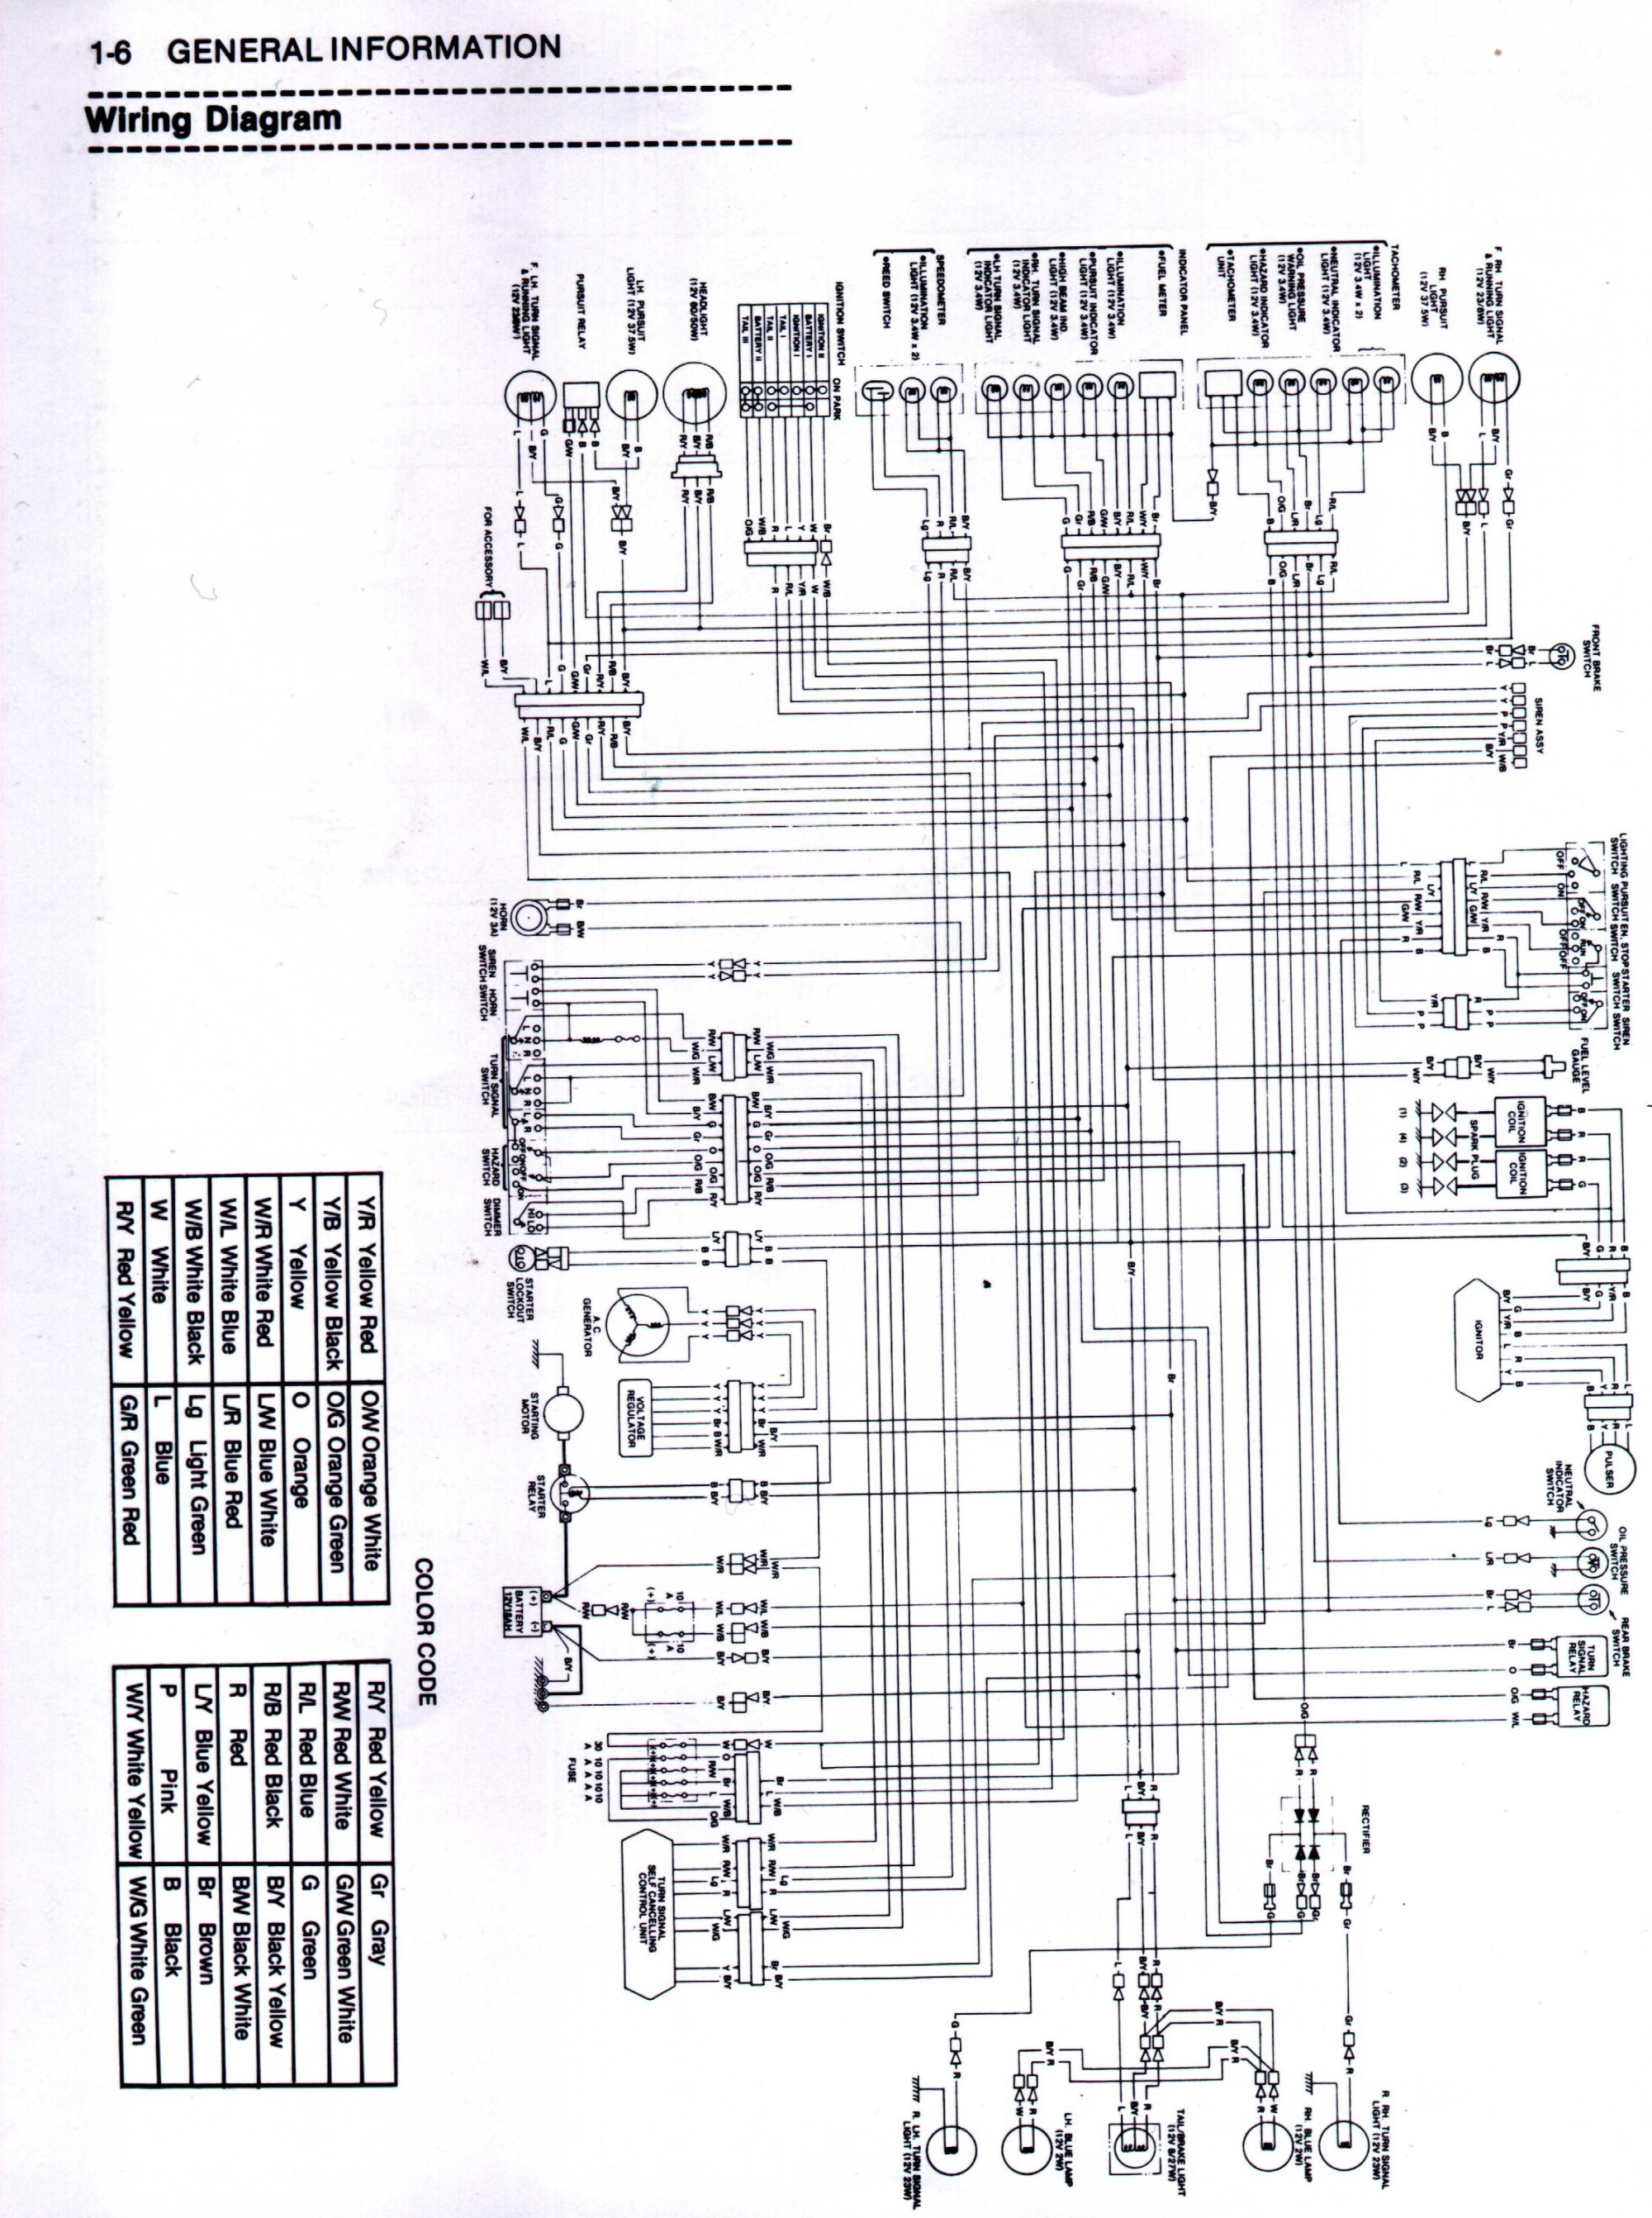 hight resolution of 1980 f350 wiring diagram alt wiring library honda cx500 wiring diagram 1980 honda cb650 wiring diagram